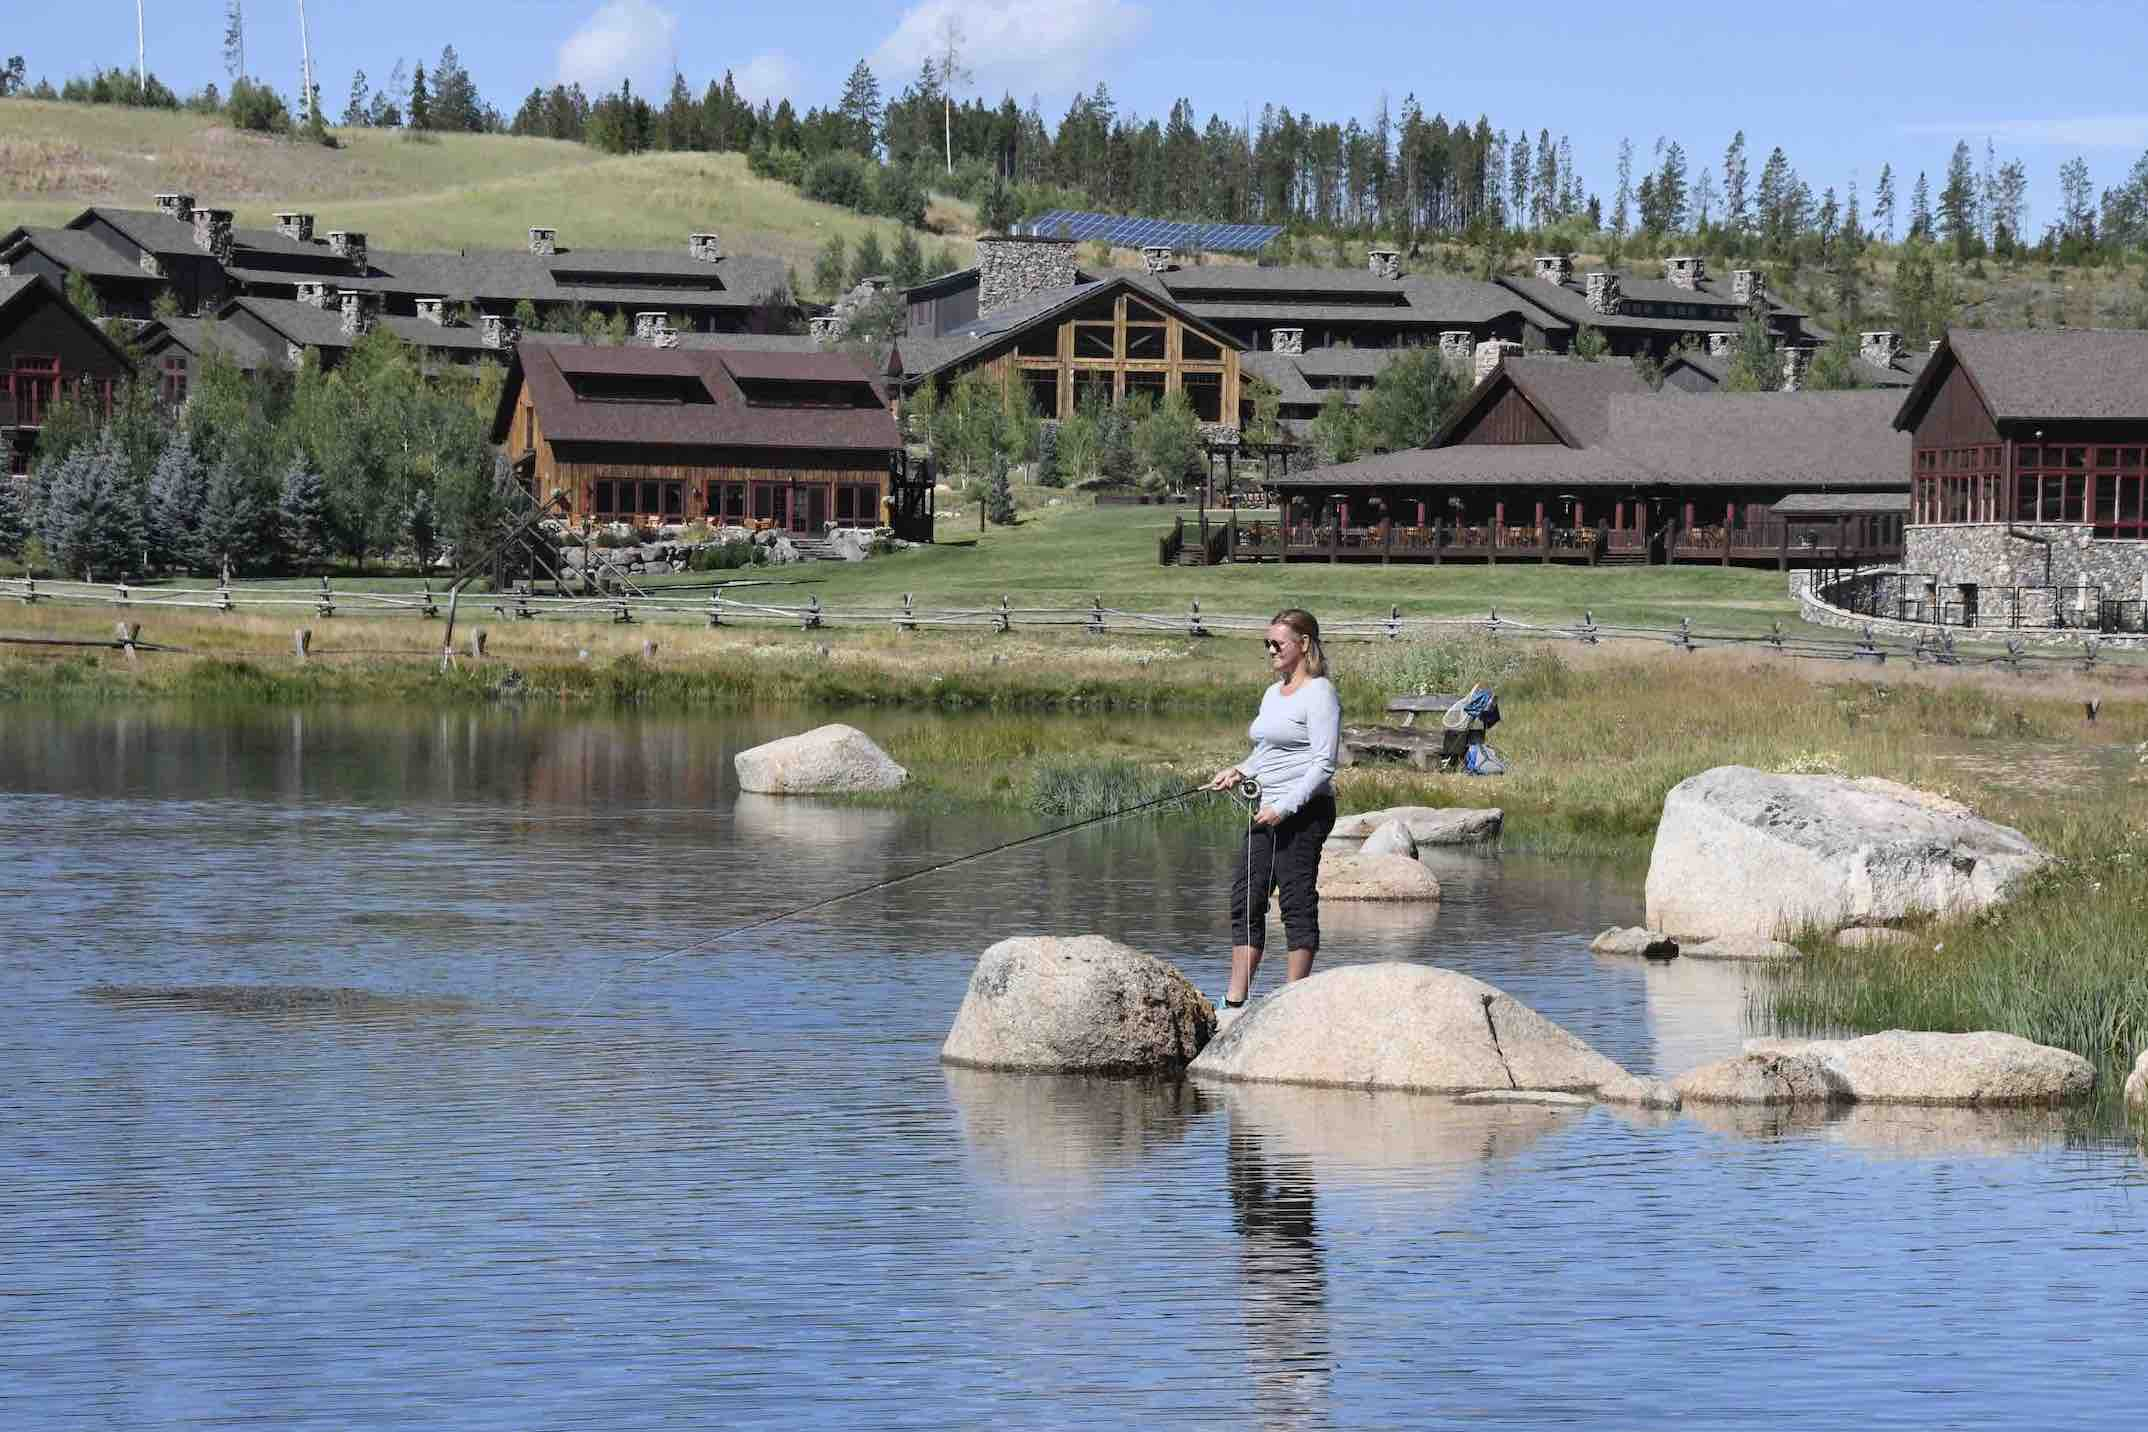 Flyfishing at Devils Thumb Ranch with woman and rod